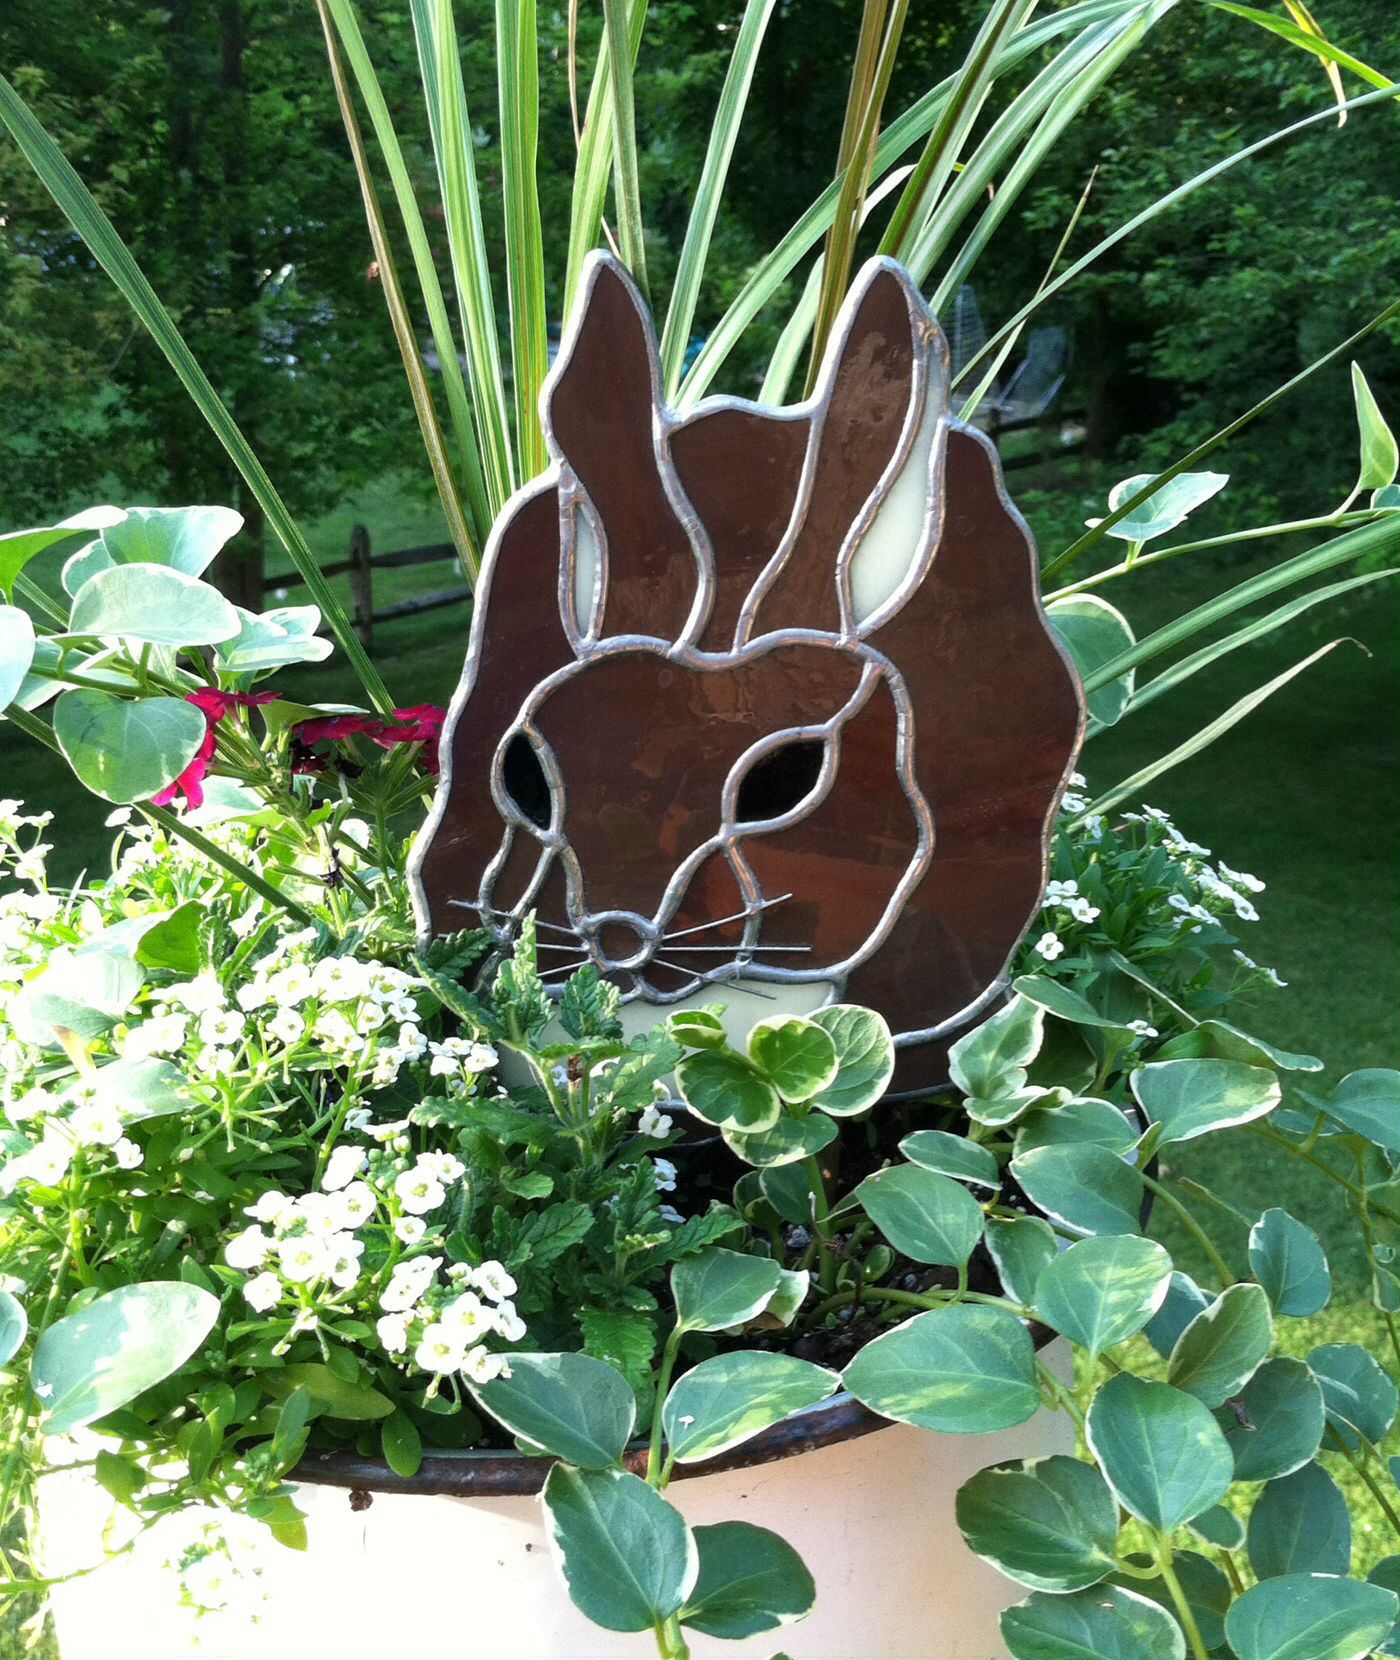 Our Bunny Nugget Immortalized In Glass